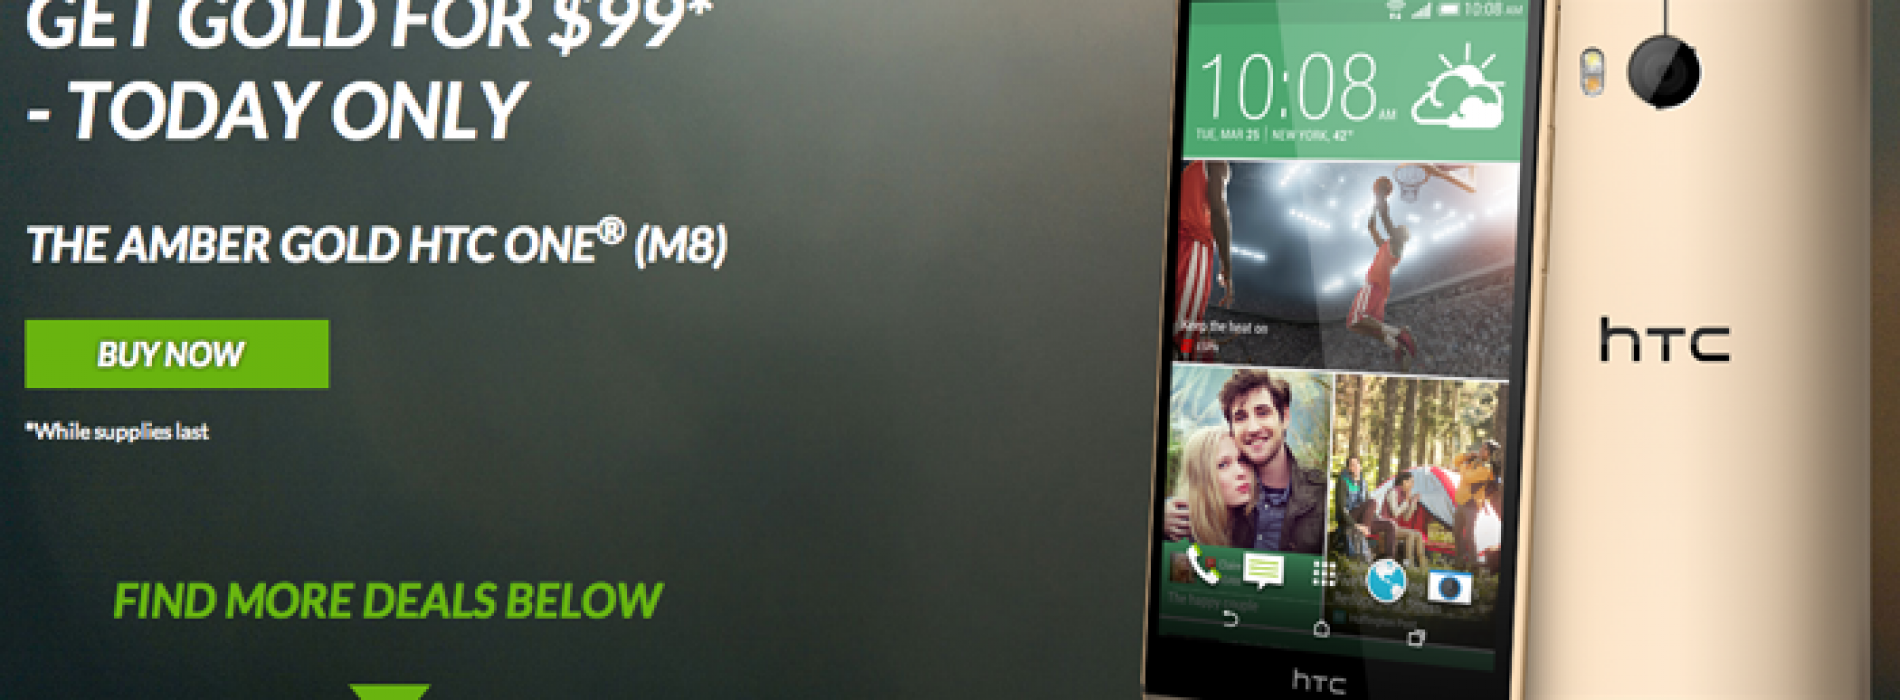 Get an Amber Gold HTC One (M8) for $99 today only